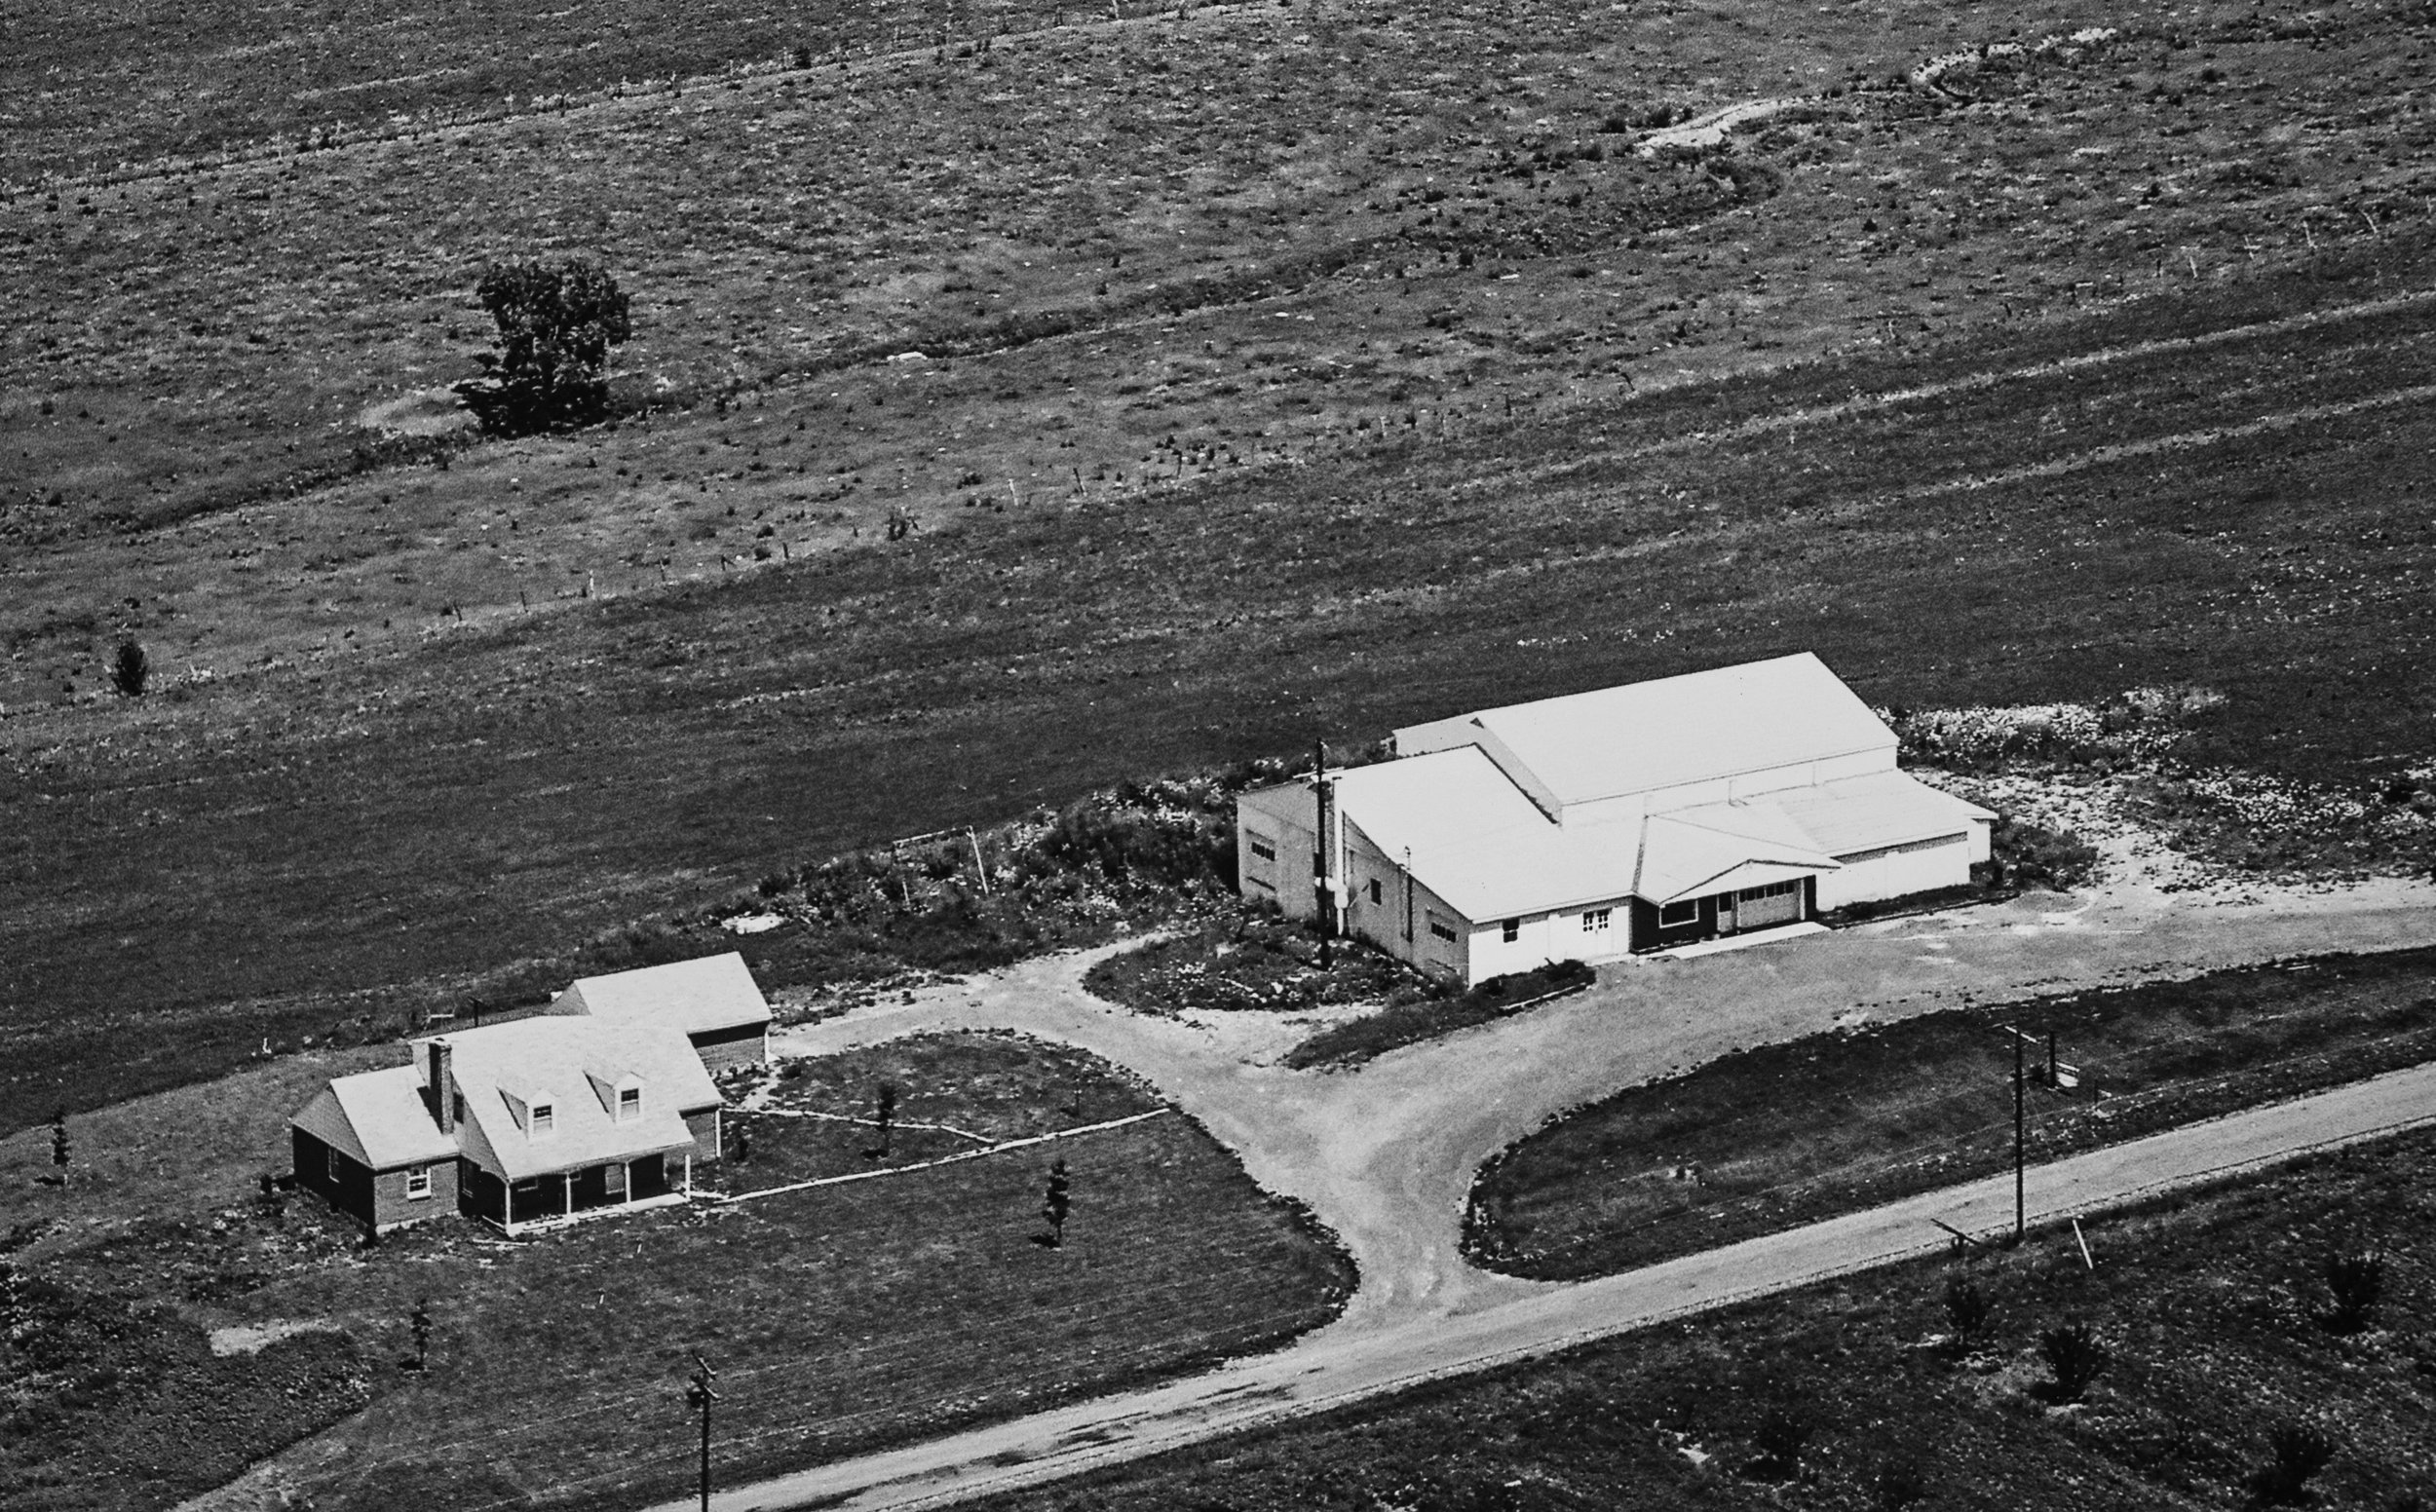 Way Fruit Farm's apple storage facility and store in 1963.